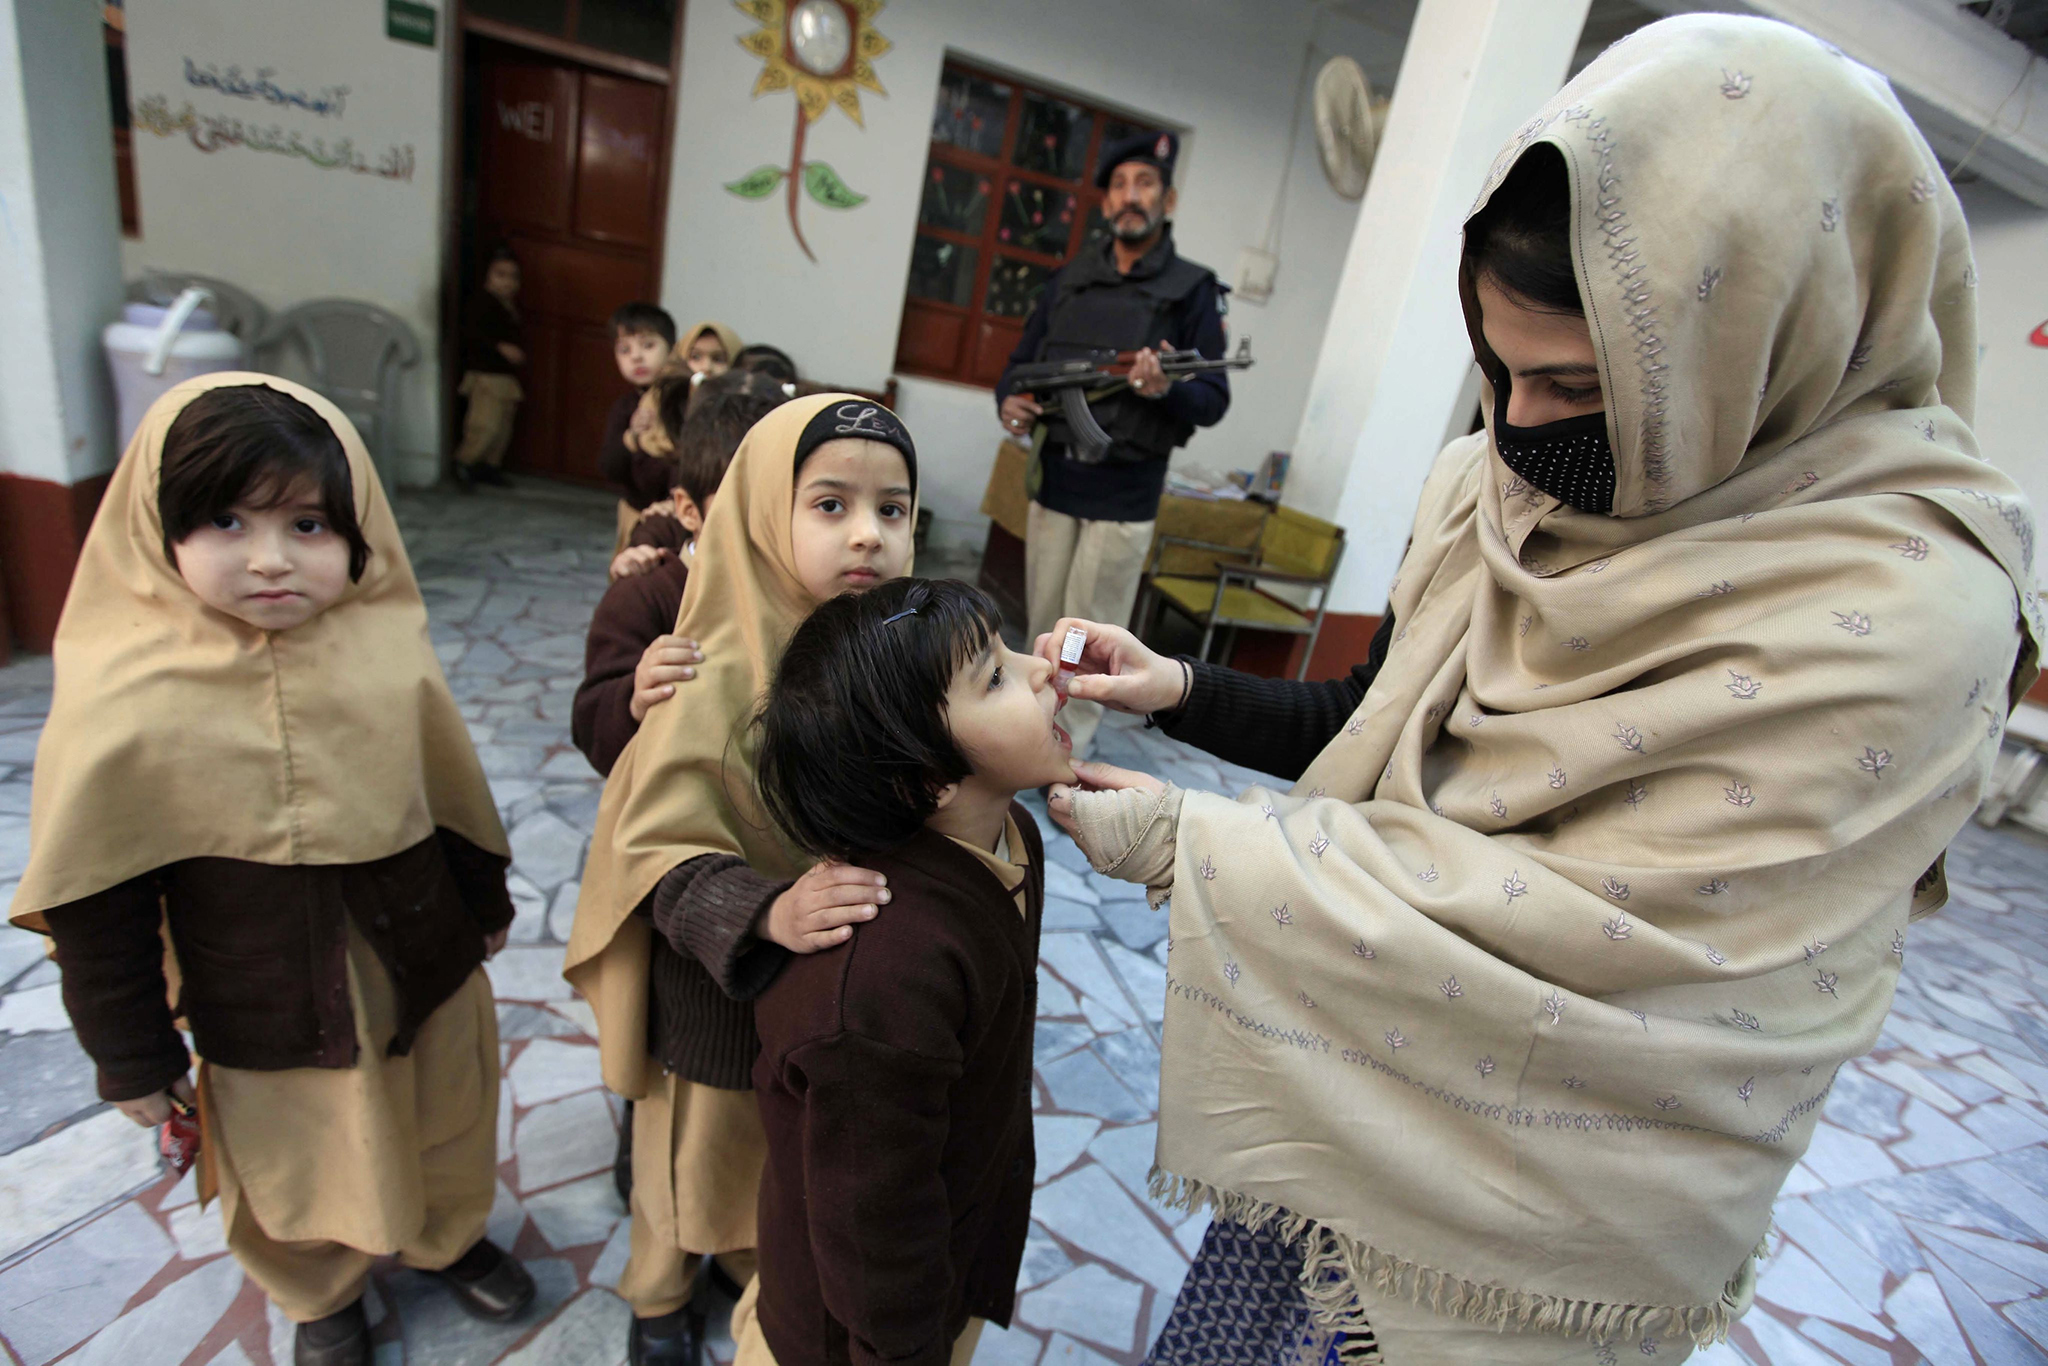 epa05684220 A soldier guards polio vaccination team administering polio vaccination to children during a three-day countrywide vaccination campaign in Peshawar, Pakistan, 21 December 2016. Pakistan is one of the last two countries, along with Afghanistan, where polio is still endemic. Though new polio cases dropped to a nine-year low in 2016, attacks by Islamist militants against health workers and police guarding them remained a challenge for a UN-funded vaccination campaign.  EPA/ARSHAD ARBAB